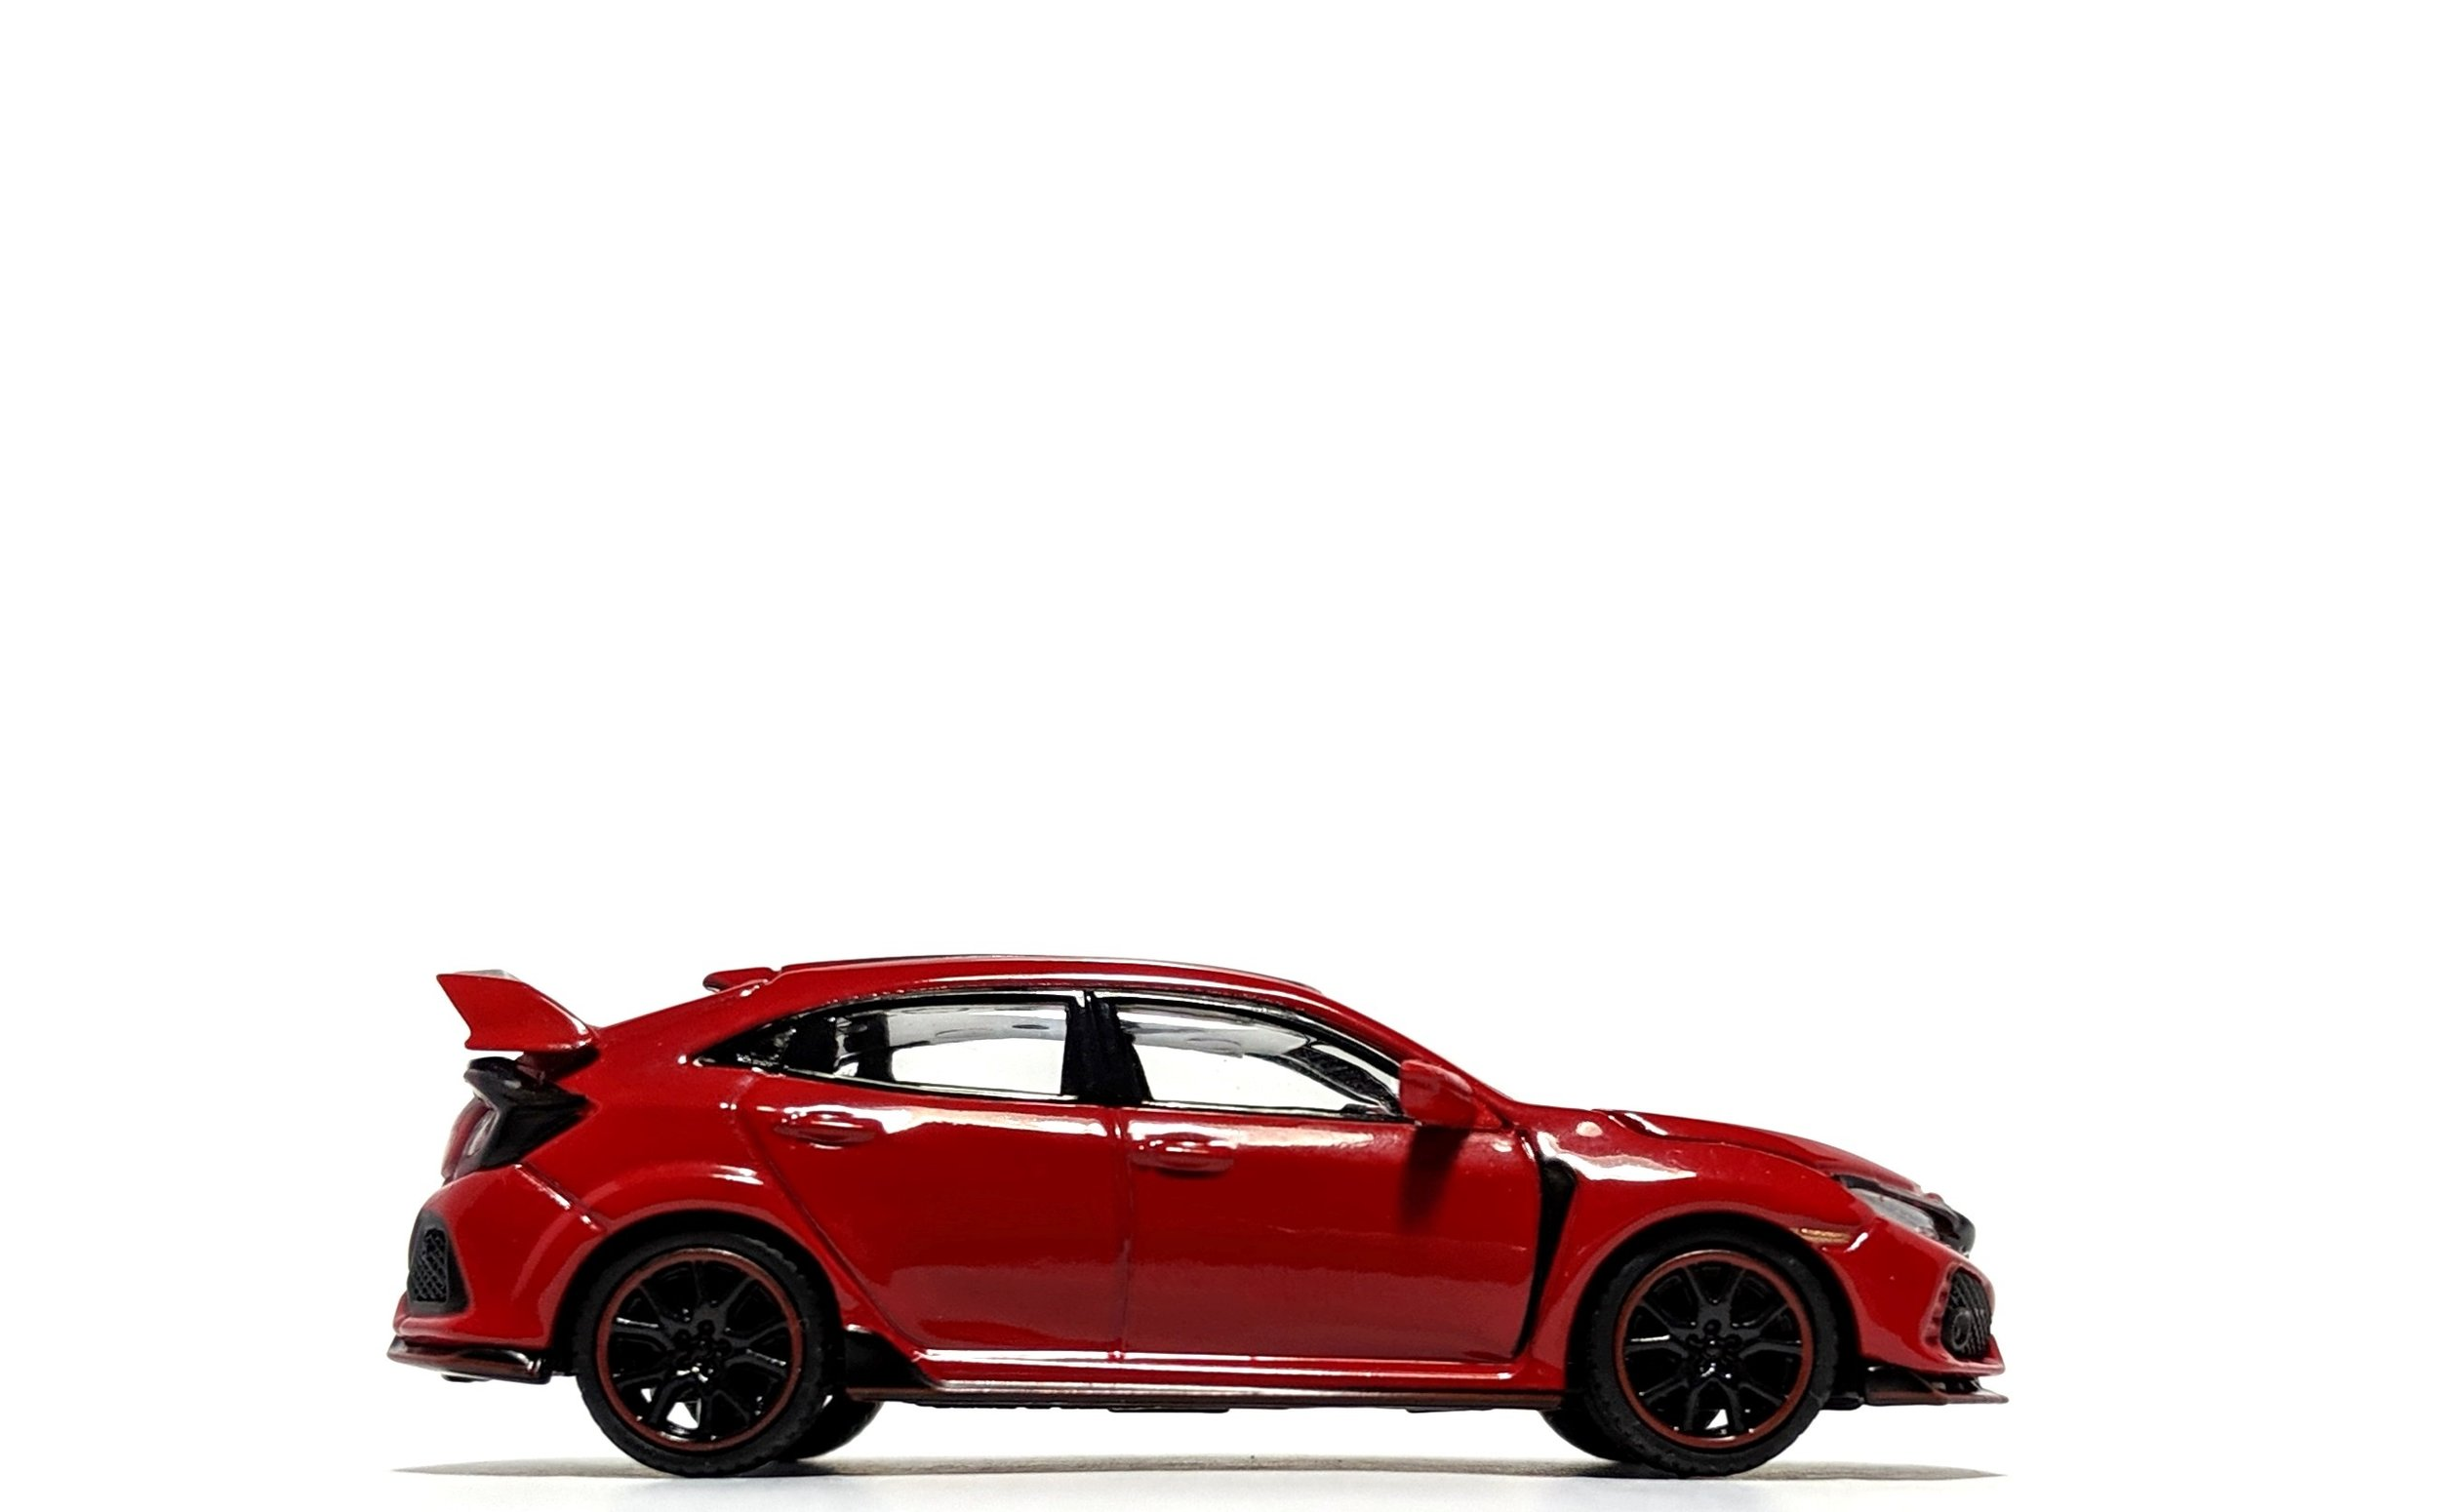 Honda Civic Type R (FK8) Rallye Red - TSM/Mini GT